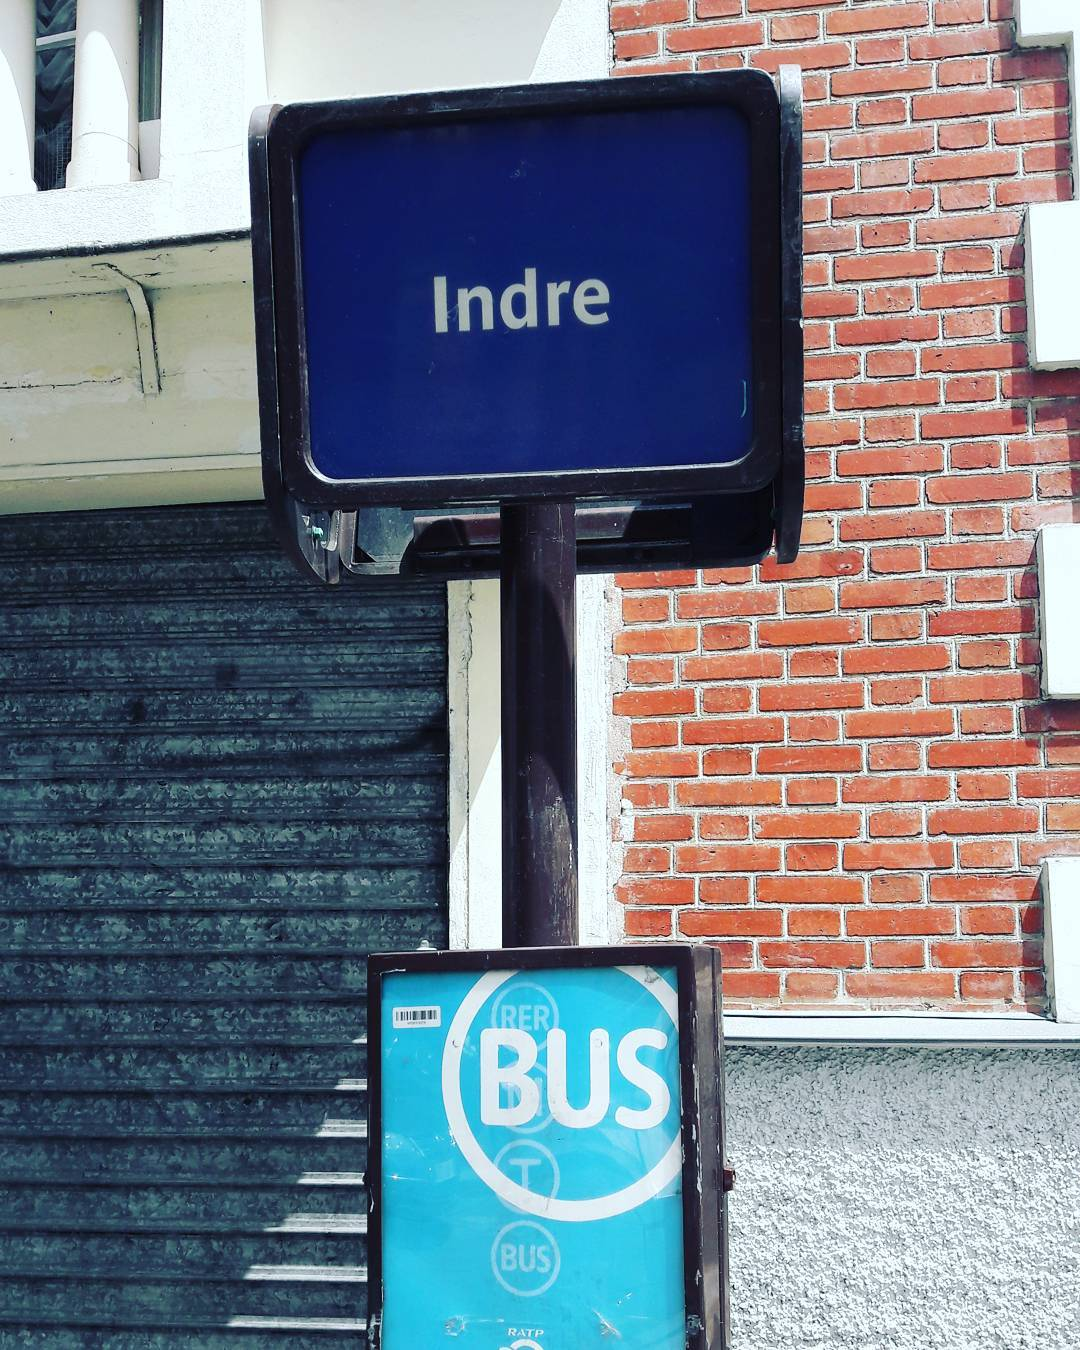 Station de bus à Paris J attends pour rentrer à la campagne #indre #paris #bus #autobus #street #city #weekend #france #instagood #picoftheday #rue #urban